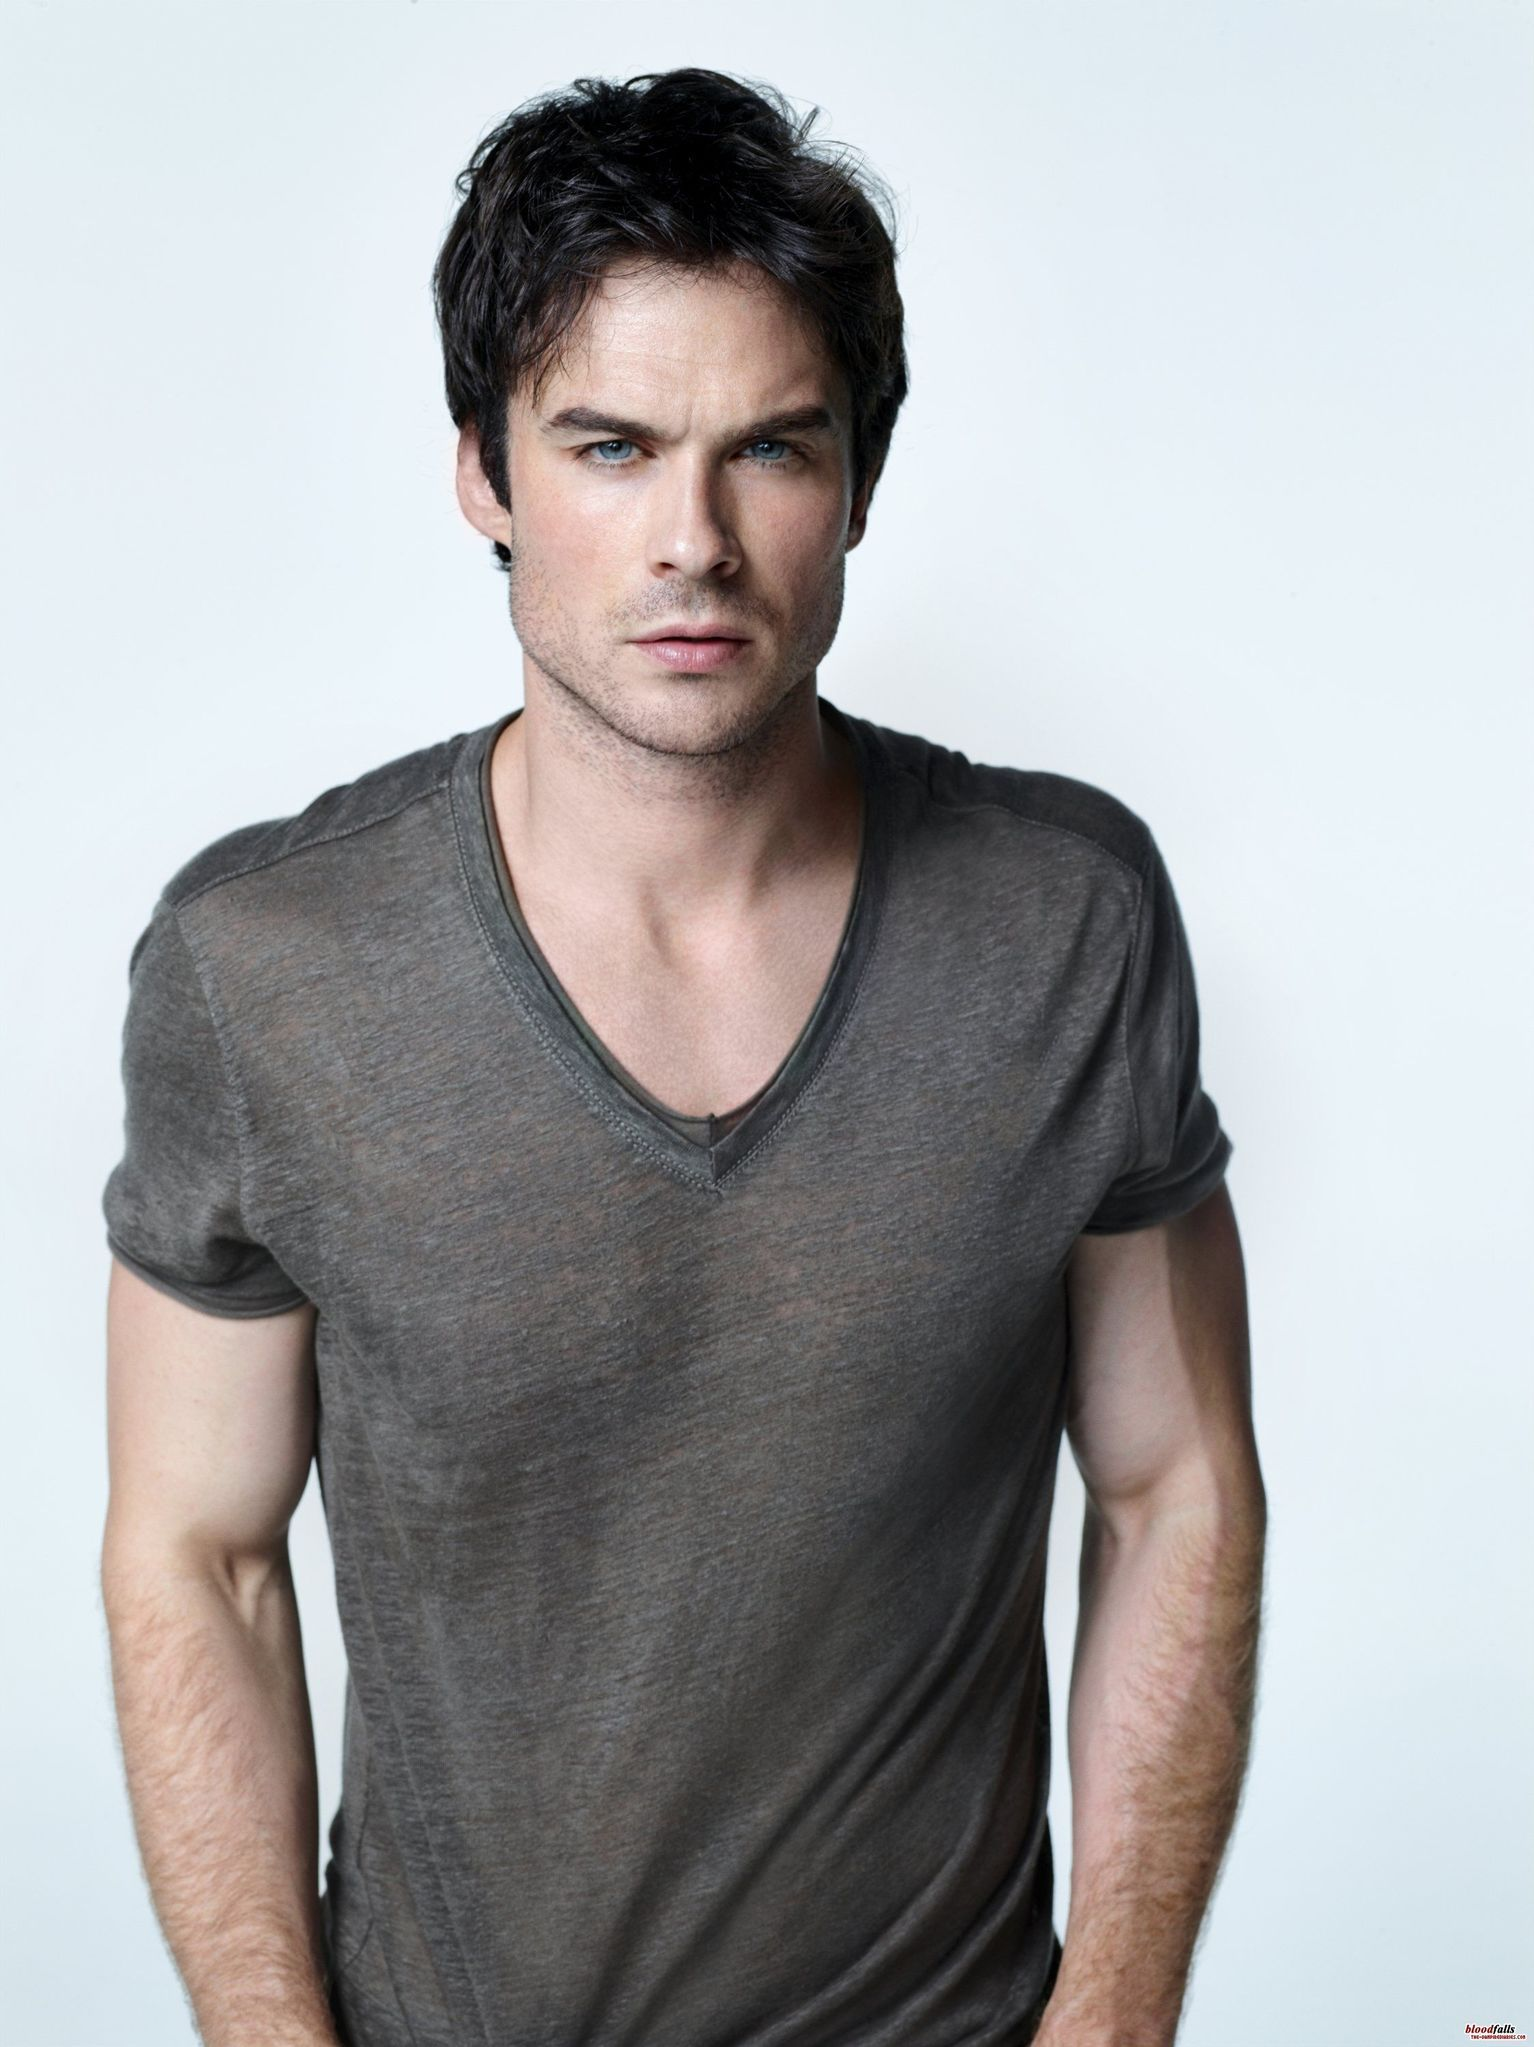 Salvatore on the vampire diaries he was pictures to pin on pinterest - After Seven Seasons On The Vampire Diaries Ian Somerhalder Is Still Looking As Sexy As Ever He May Play A Or Is He 175 Now Vampire On The